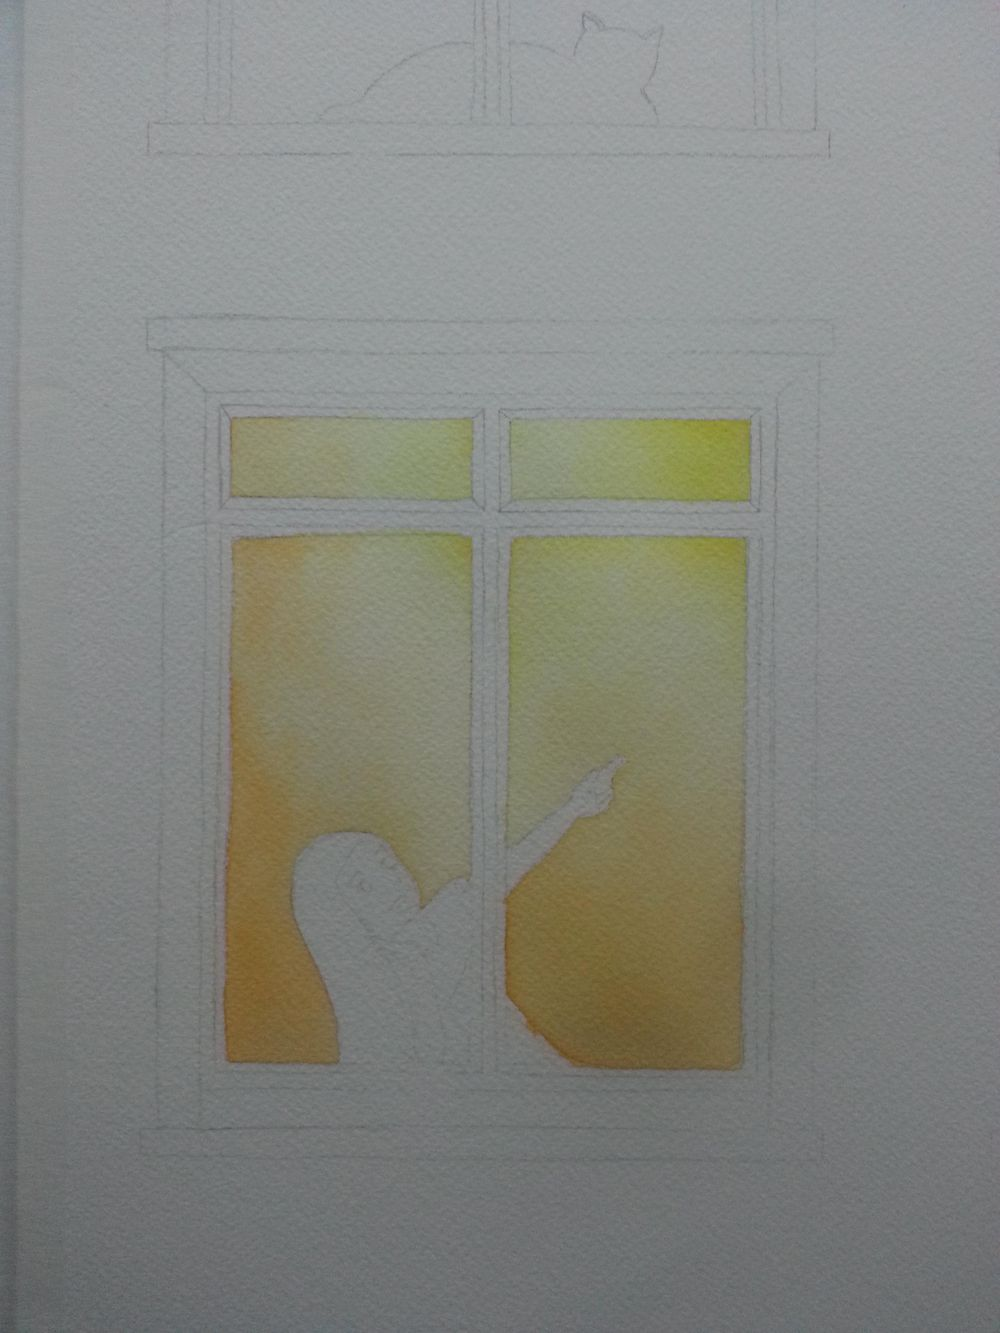 Window - image 2 - student project